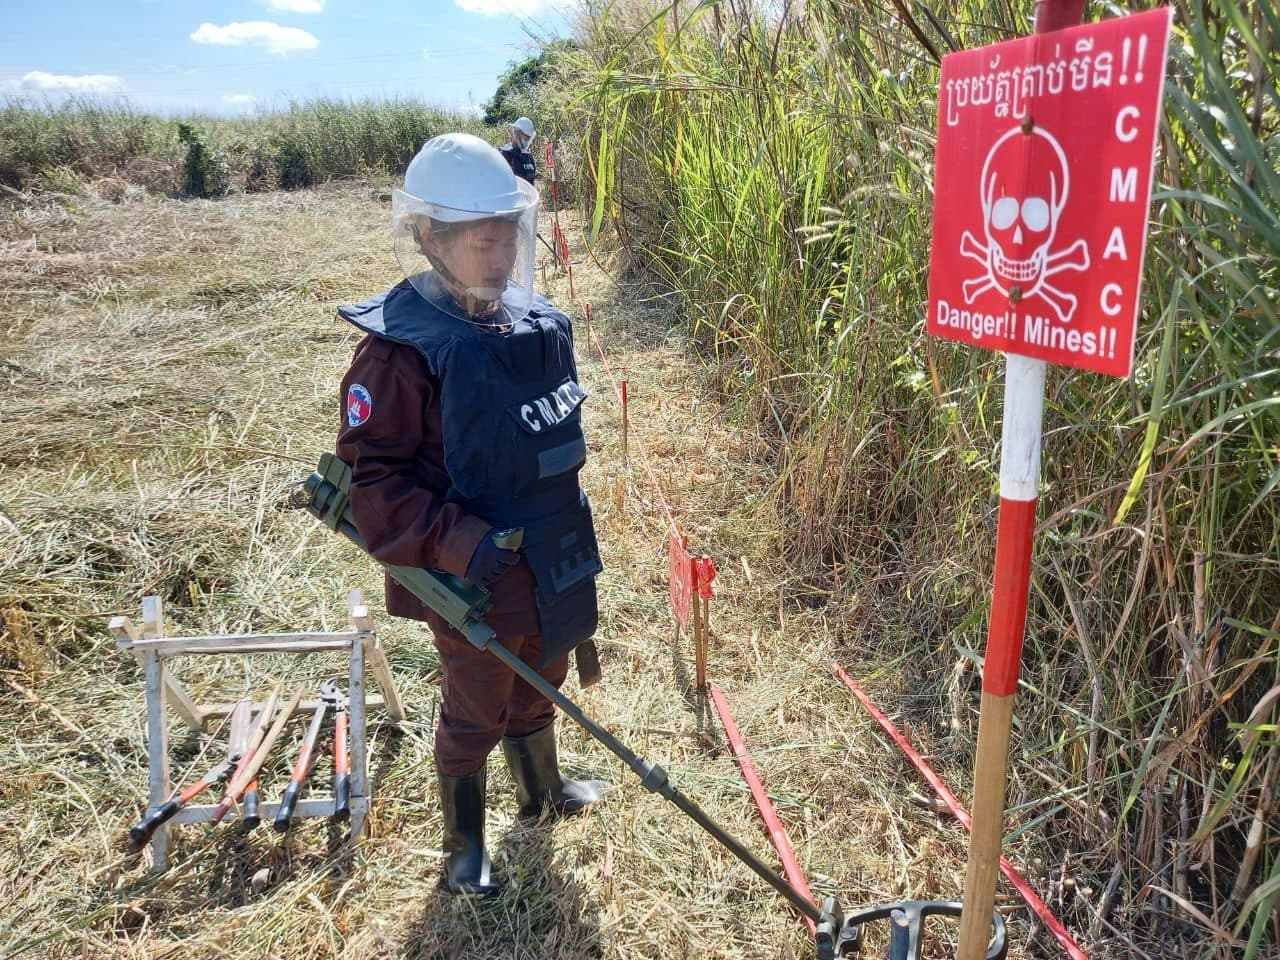 Remarkable Achievements in Cambodia Landmine Clearance, Yet More Work Remains